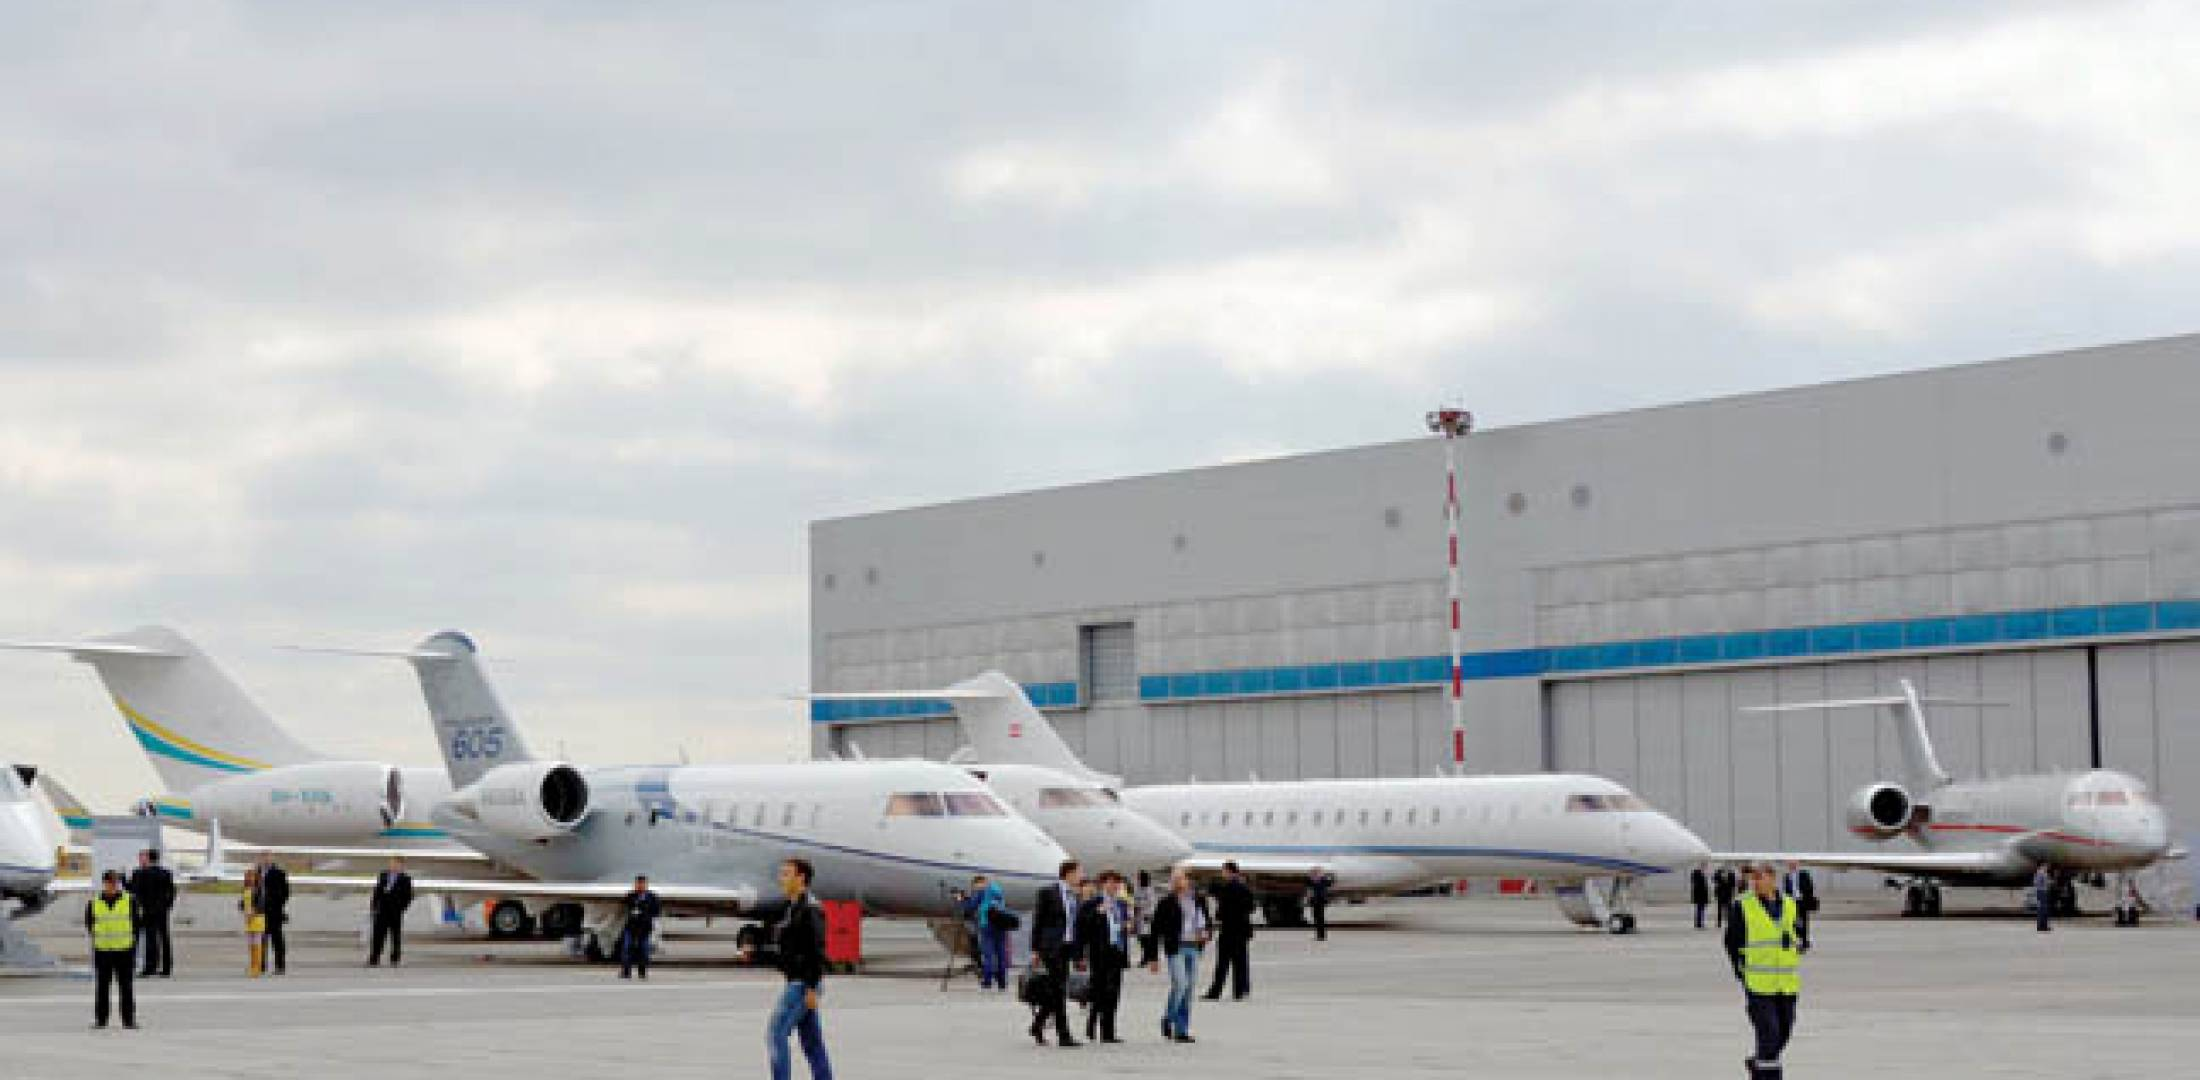 This year's eighth annual JetExpo show held in Moscow in September provided grounds for optimism that the business aviation market in Russia will achieve more growth, albeit once the industry overcomes some key challenges.